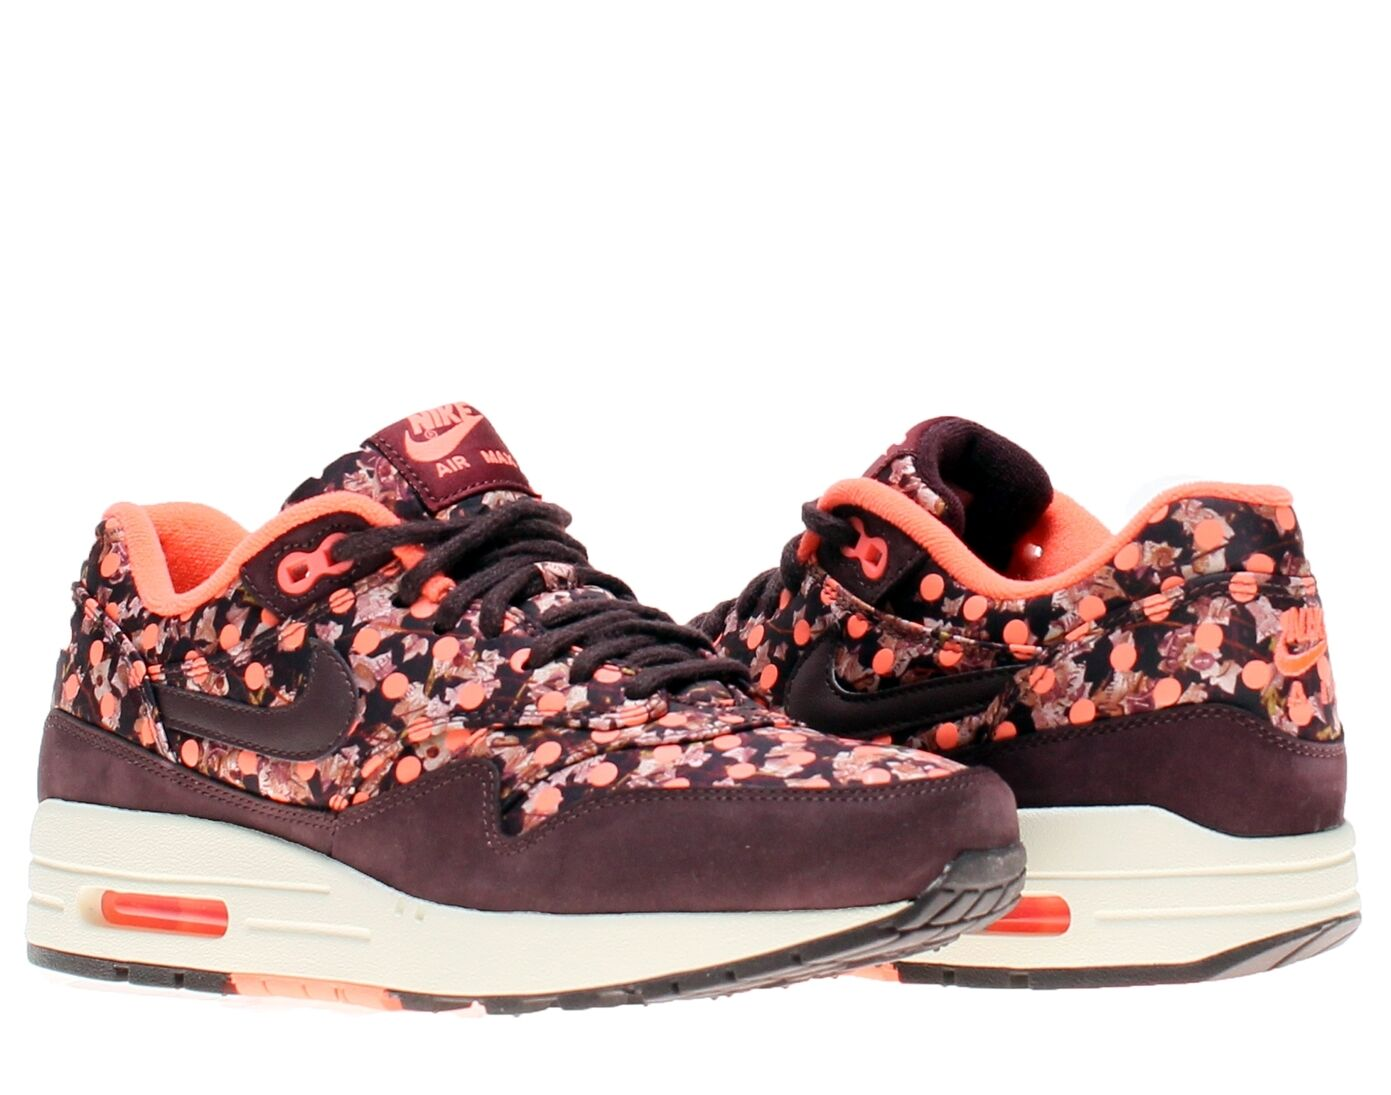 Nike Air Max 1 Liberty Prints QS Deep Burgundy Shoe Size 8 540855 600